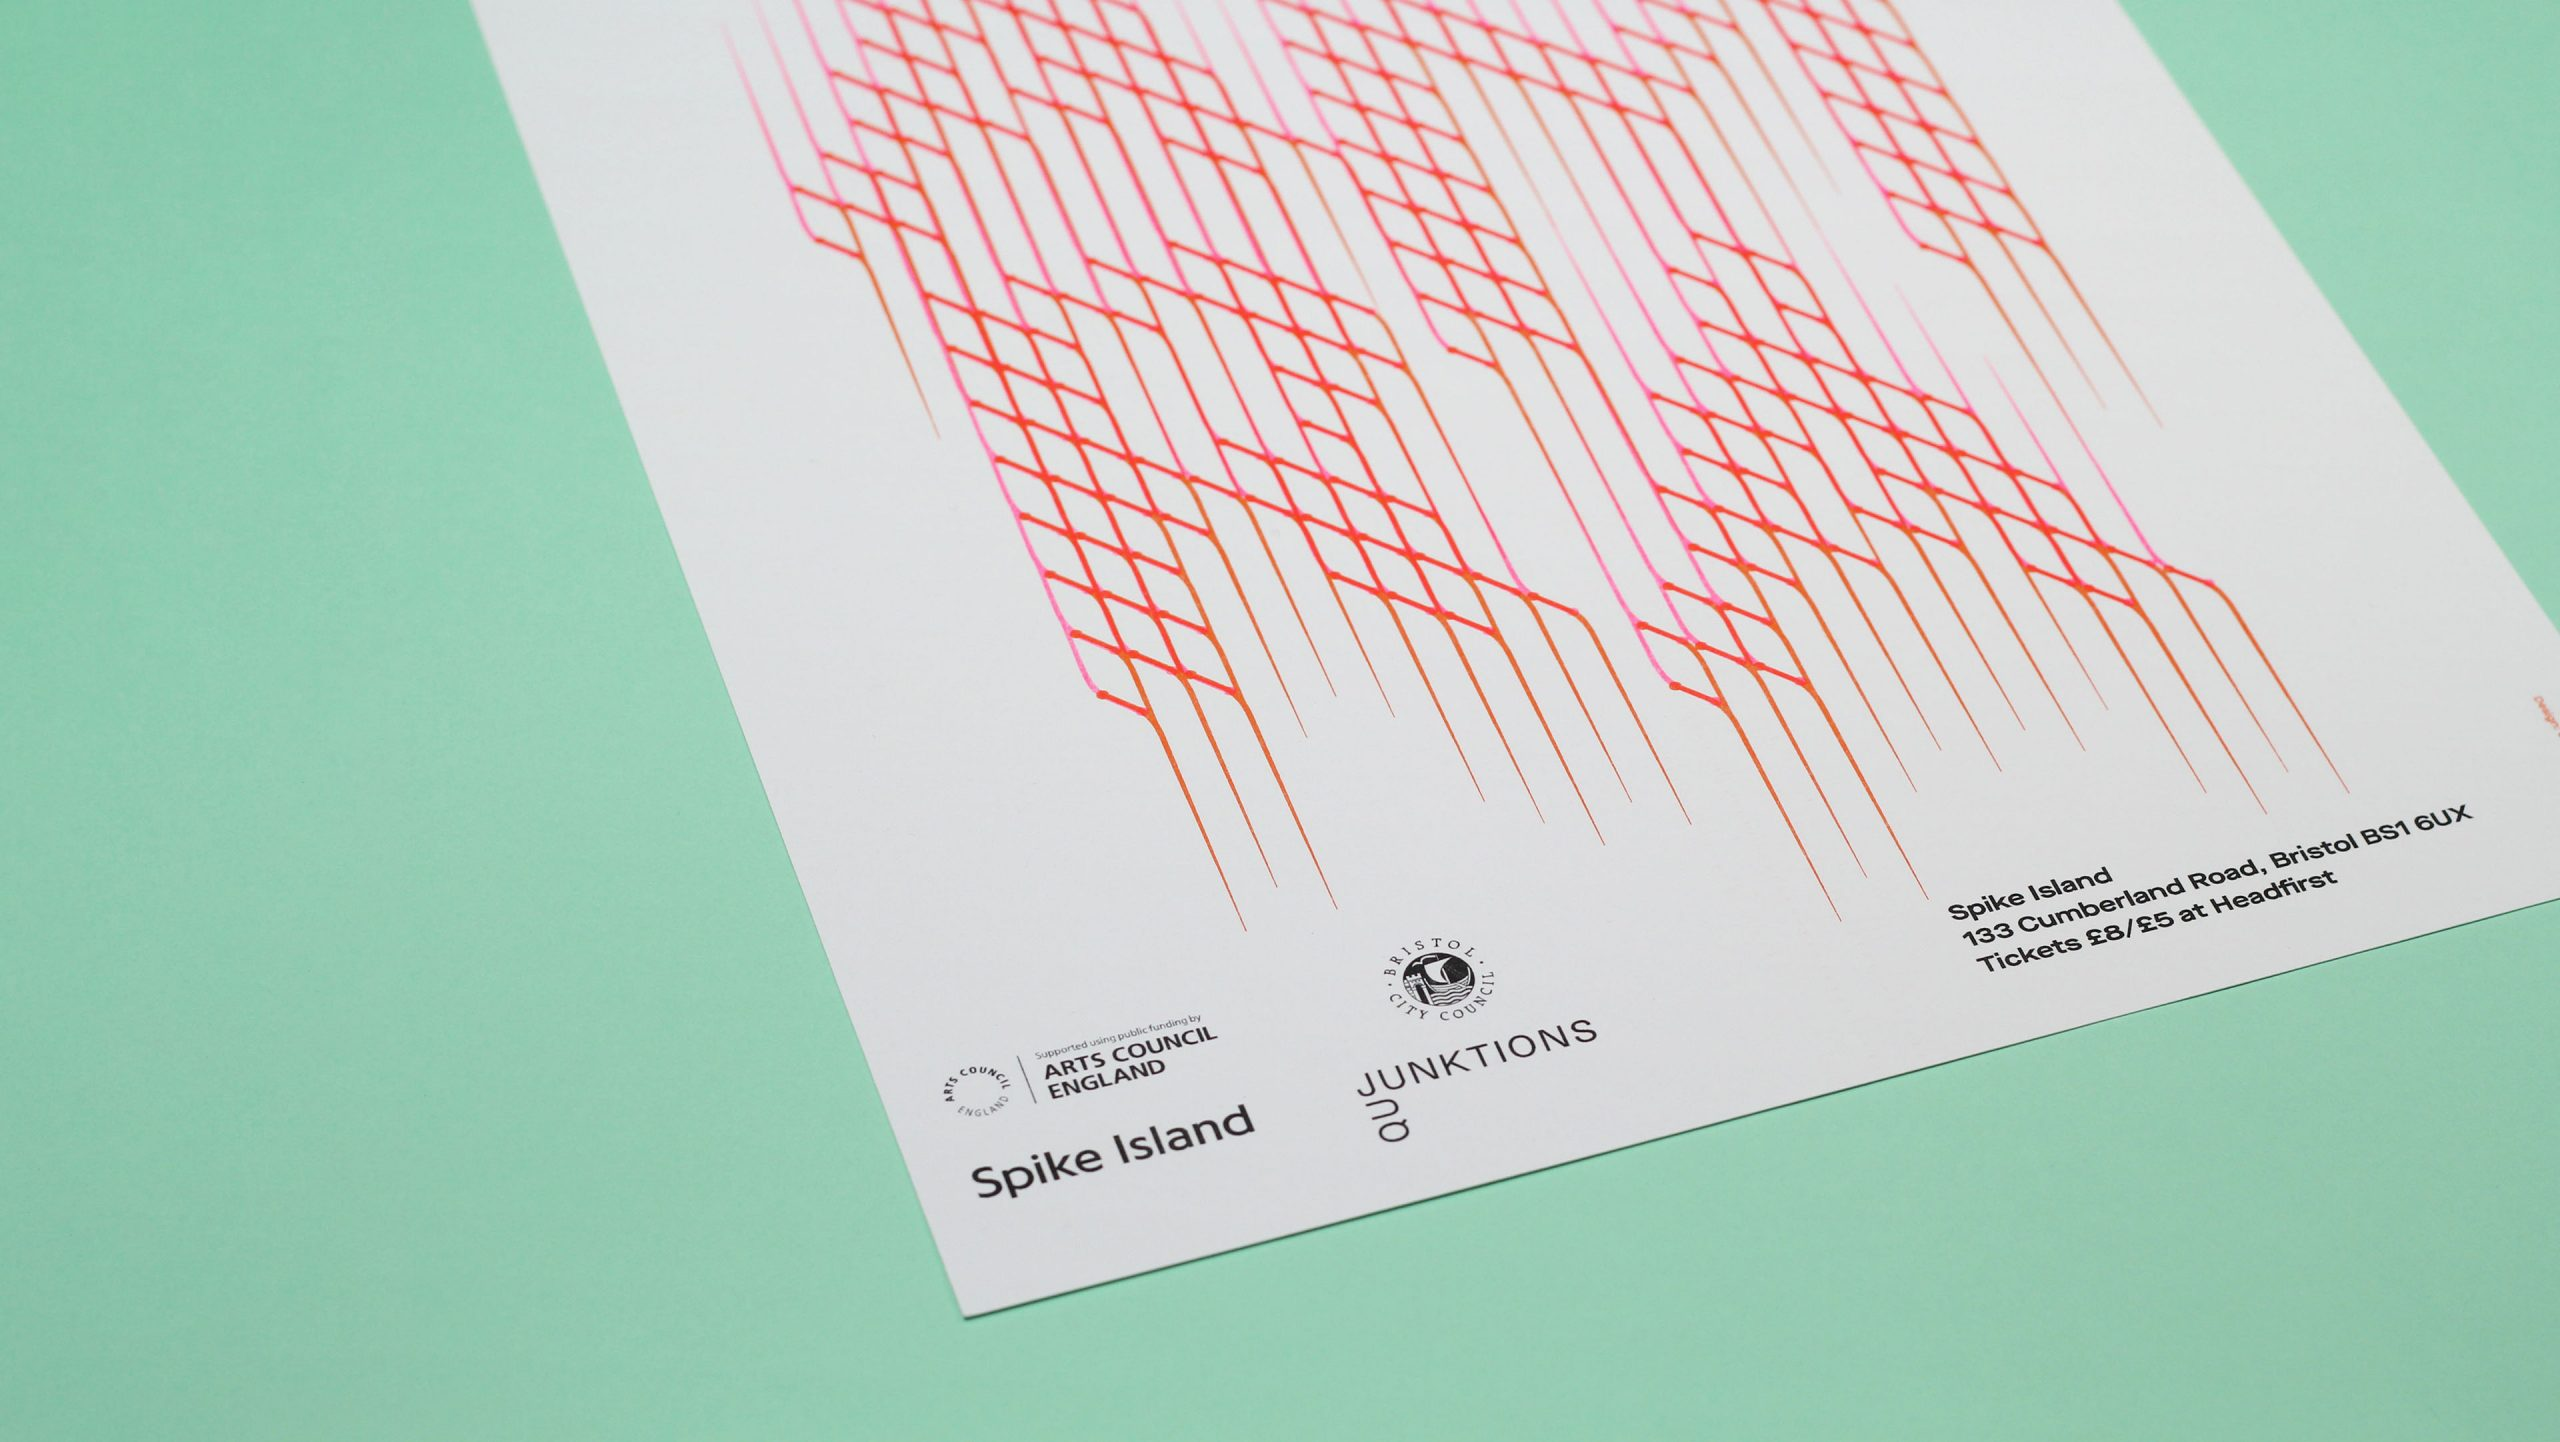 Close up of 3 colour risograph printed typographic poster for AMRA's live event at Spike Island, designed by City Edition Studio